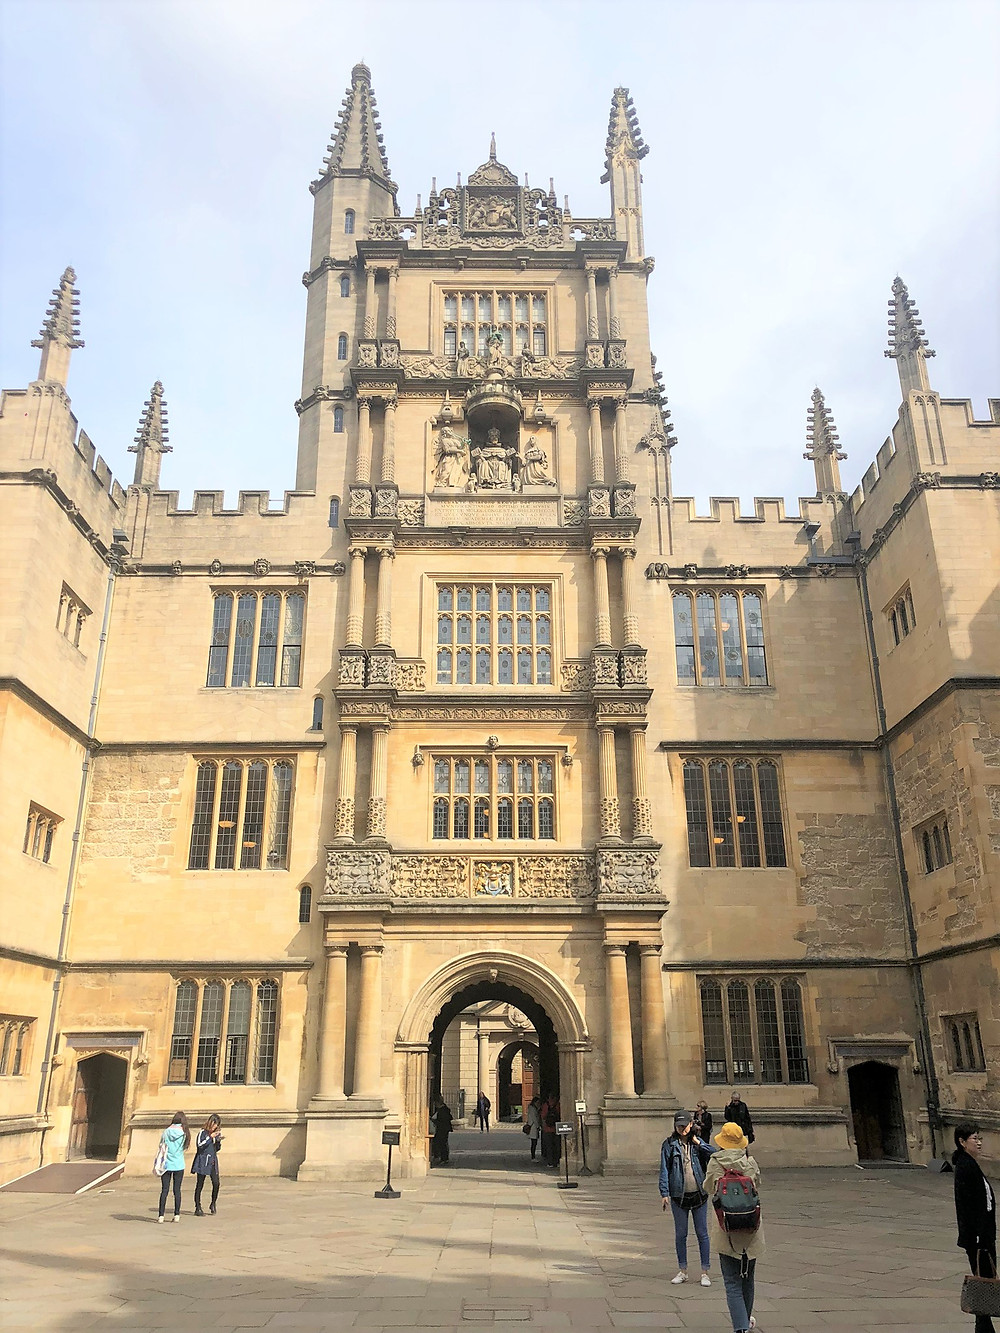 Bodleian Library founded in 1598 is the main research library of the University of Oxford in England